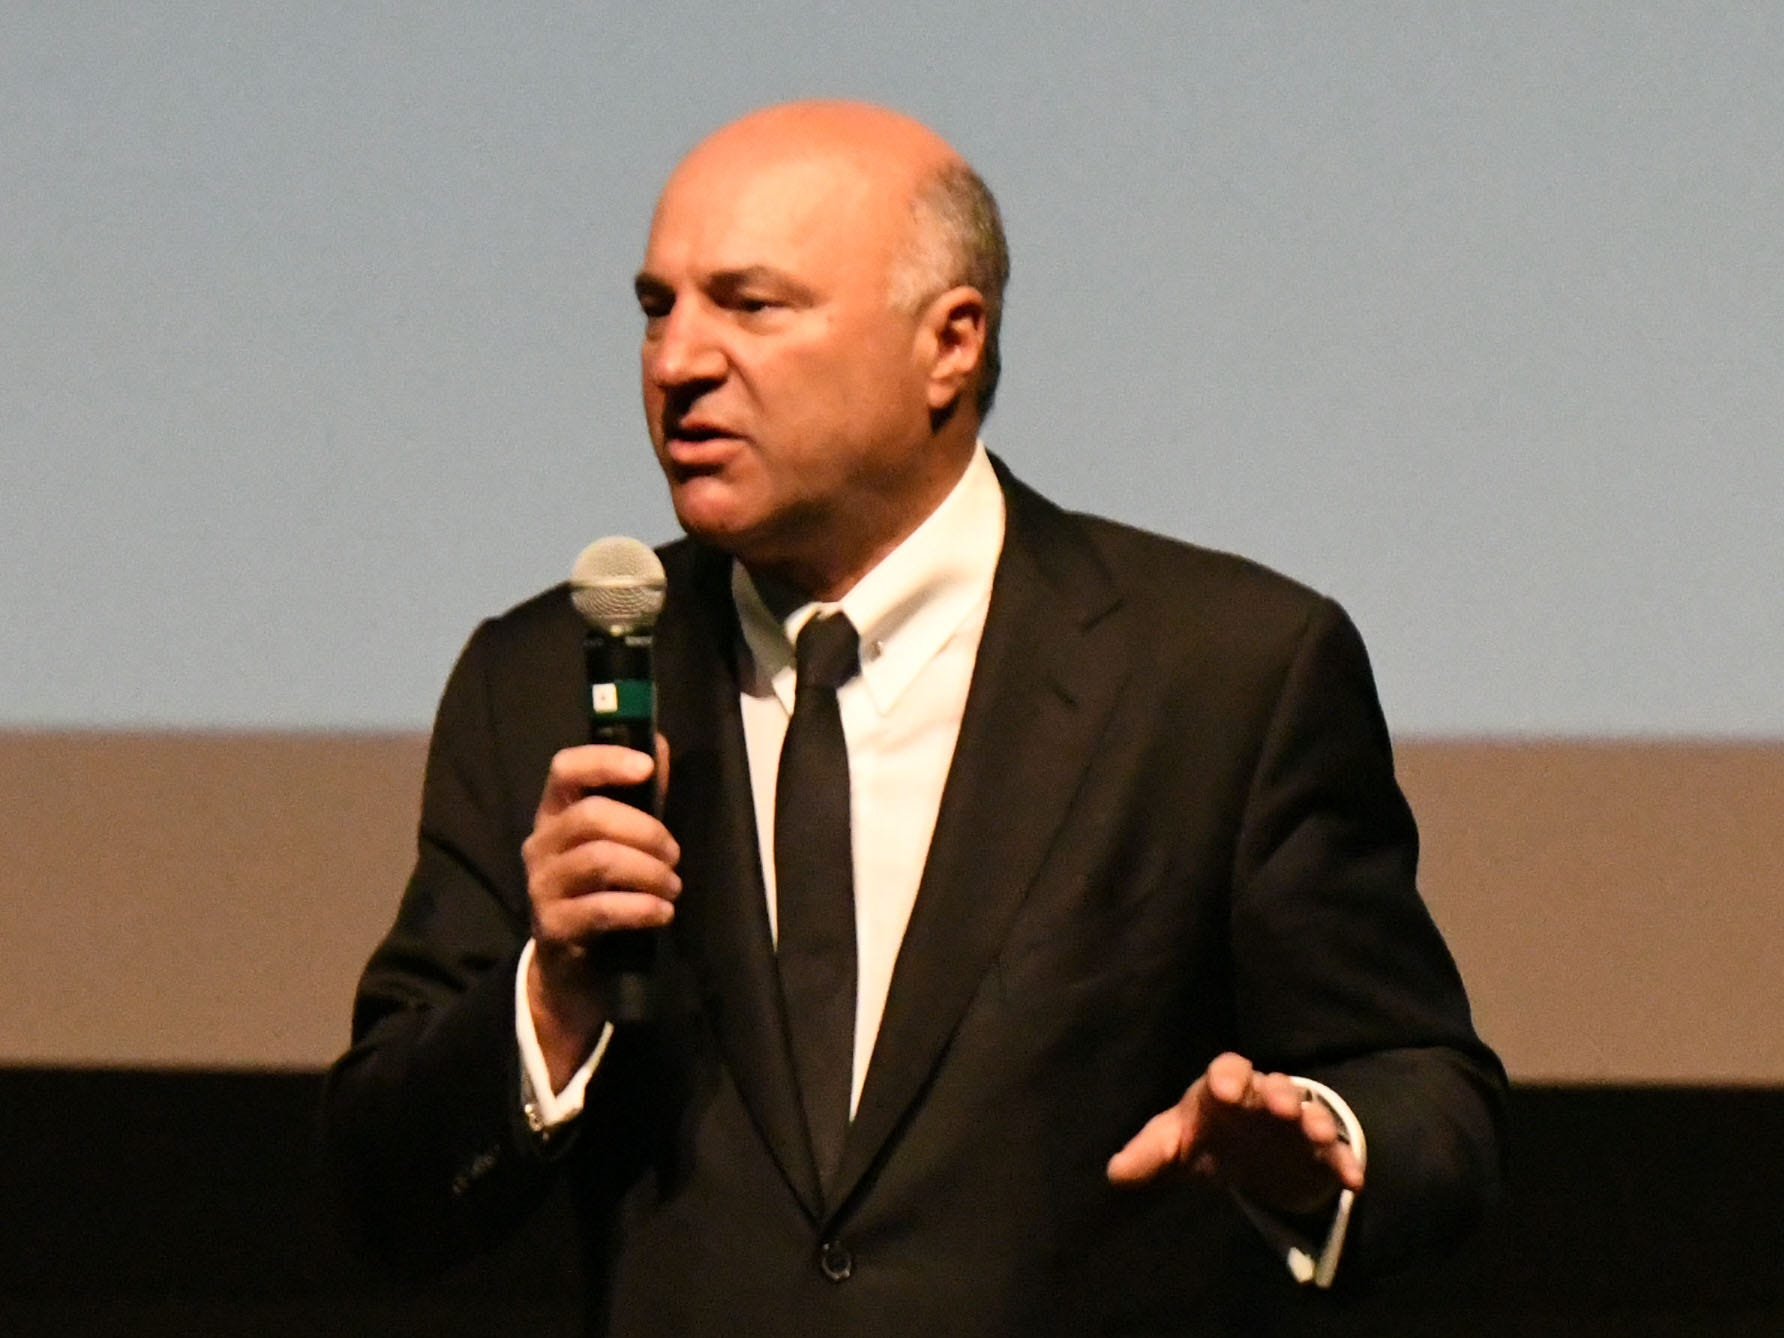 Shark Tank co-star and serial entrepreneur Kevin O'Leary talks to a crowd of a couple hundred people about entrepreneurship at the Power Forward business event in the Ruby Diamond Hall, Wednesday Feb. 6, 2019.